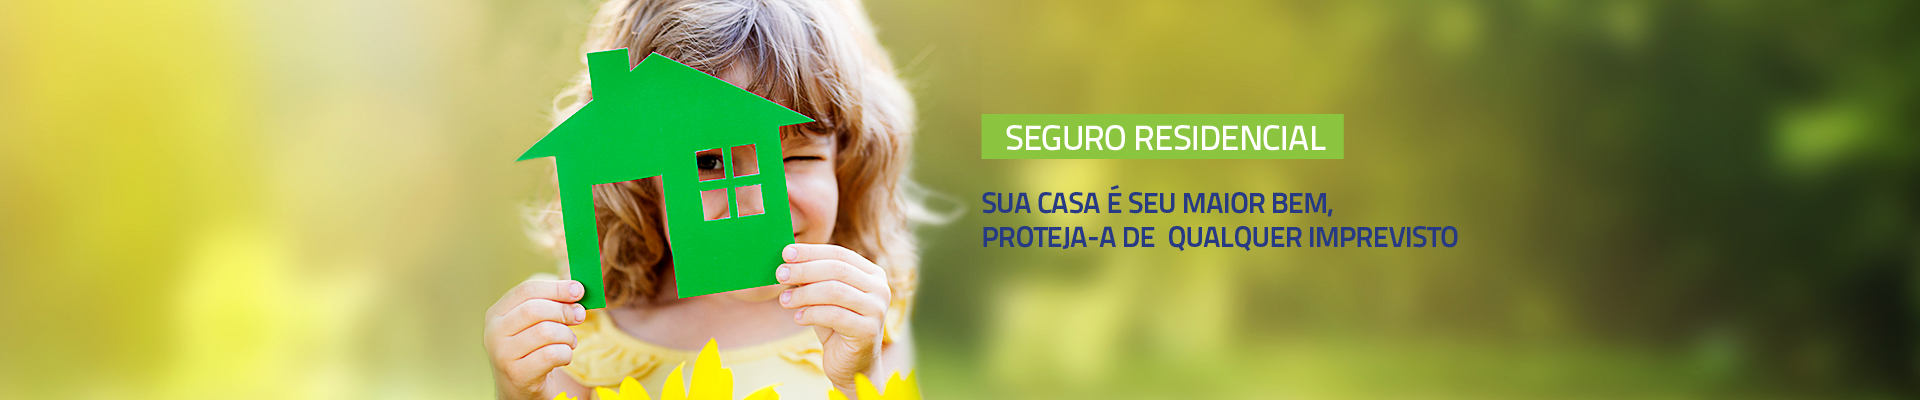 fullbanners_seguro_residencial__01